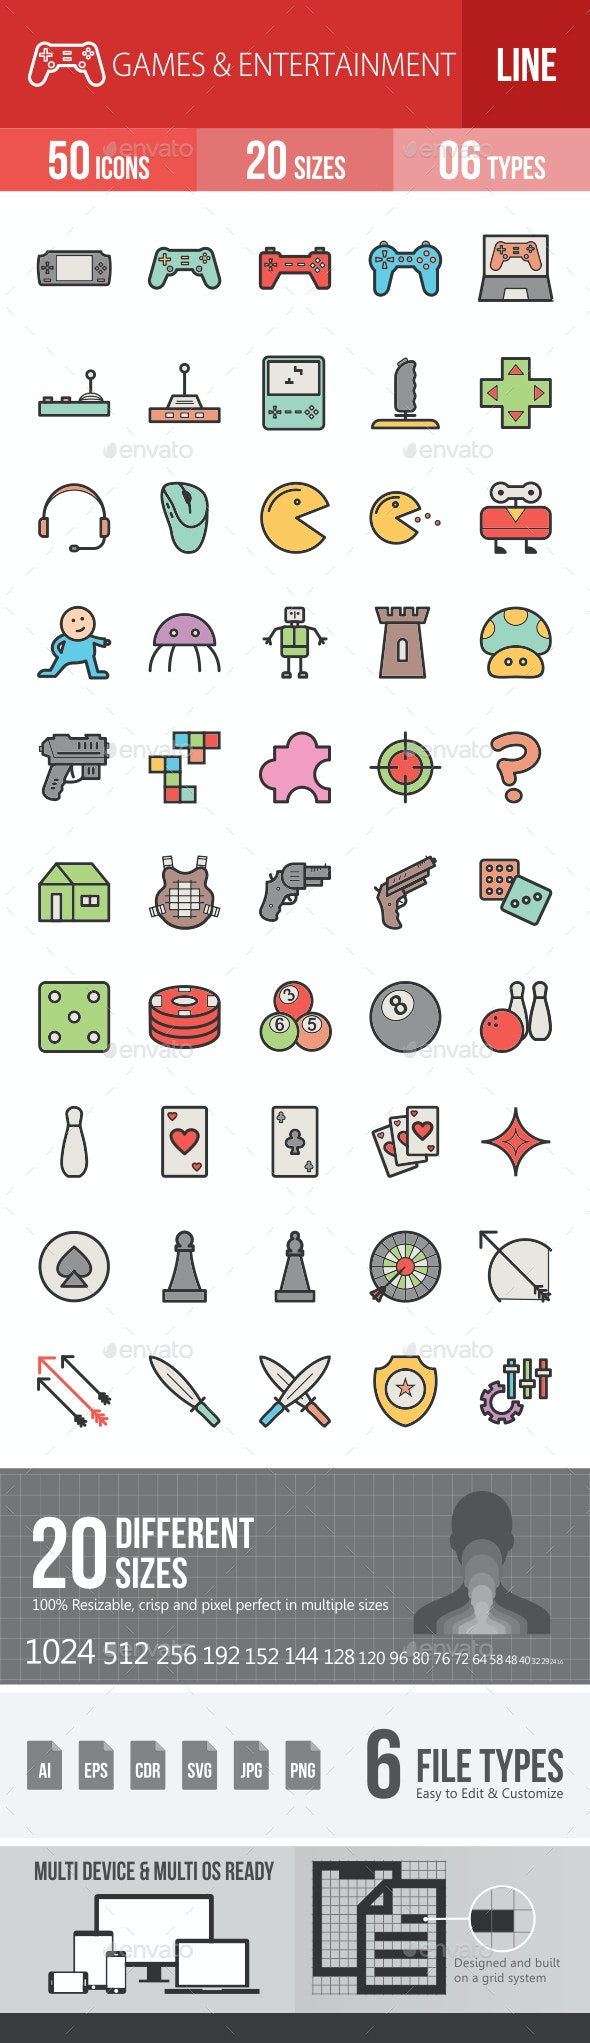 Games & Entertainment Filled Line Icons - Icons